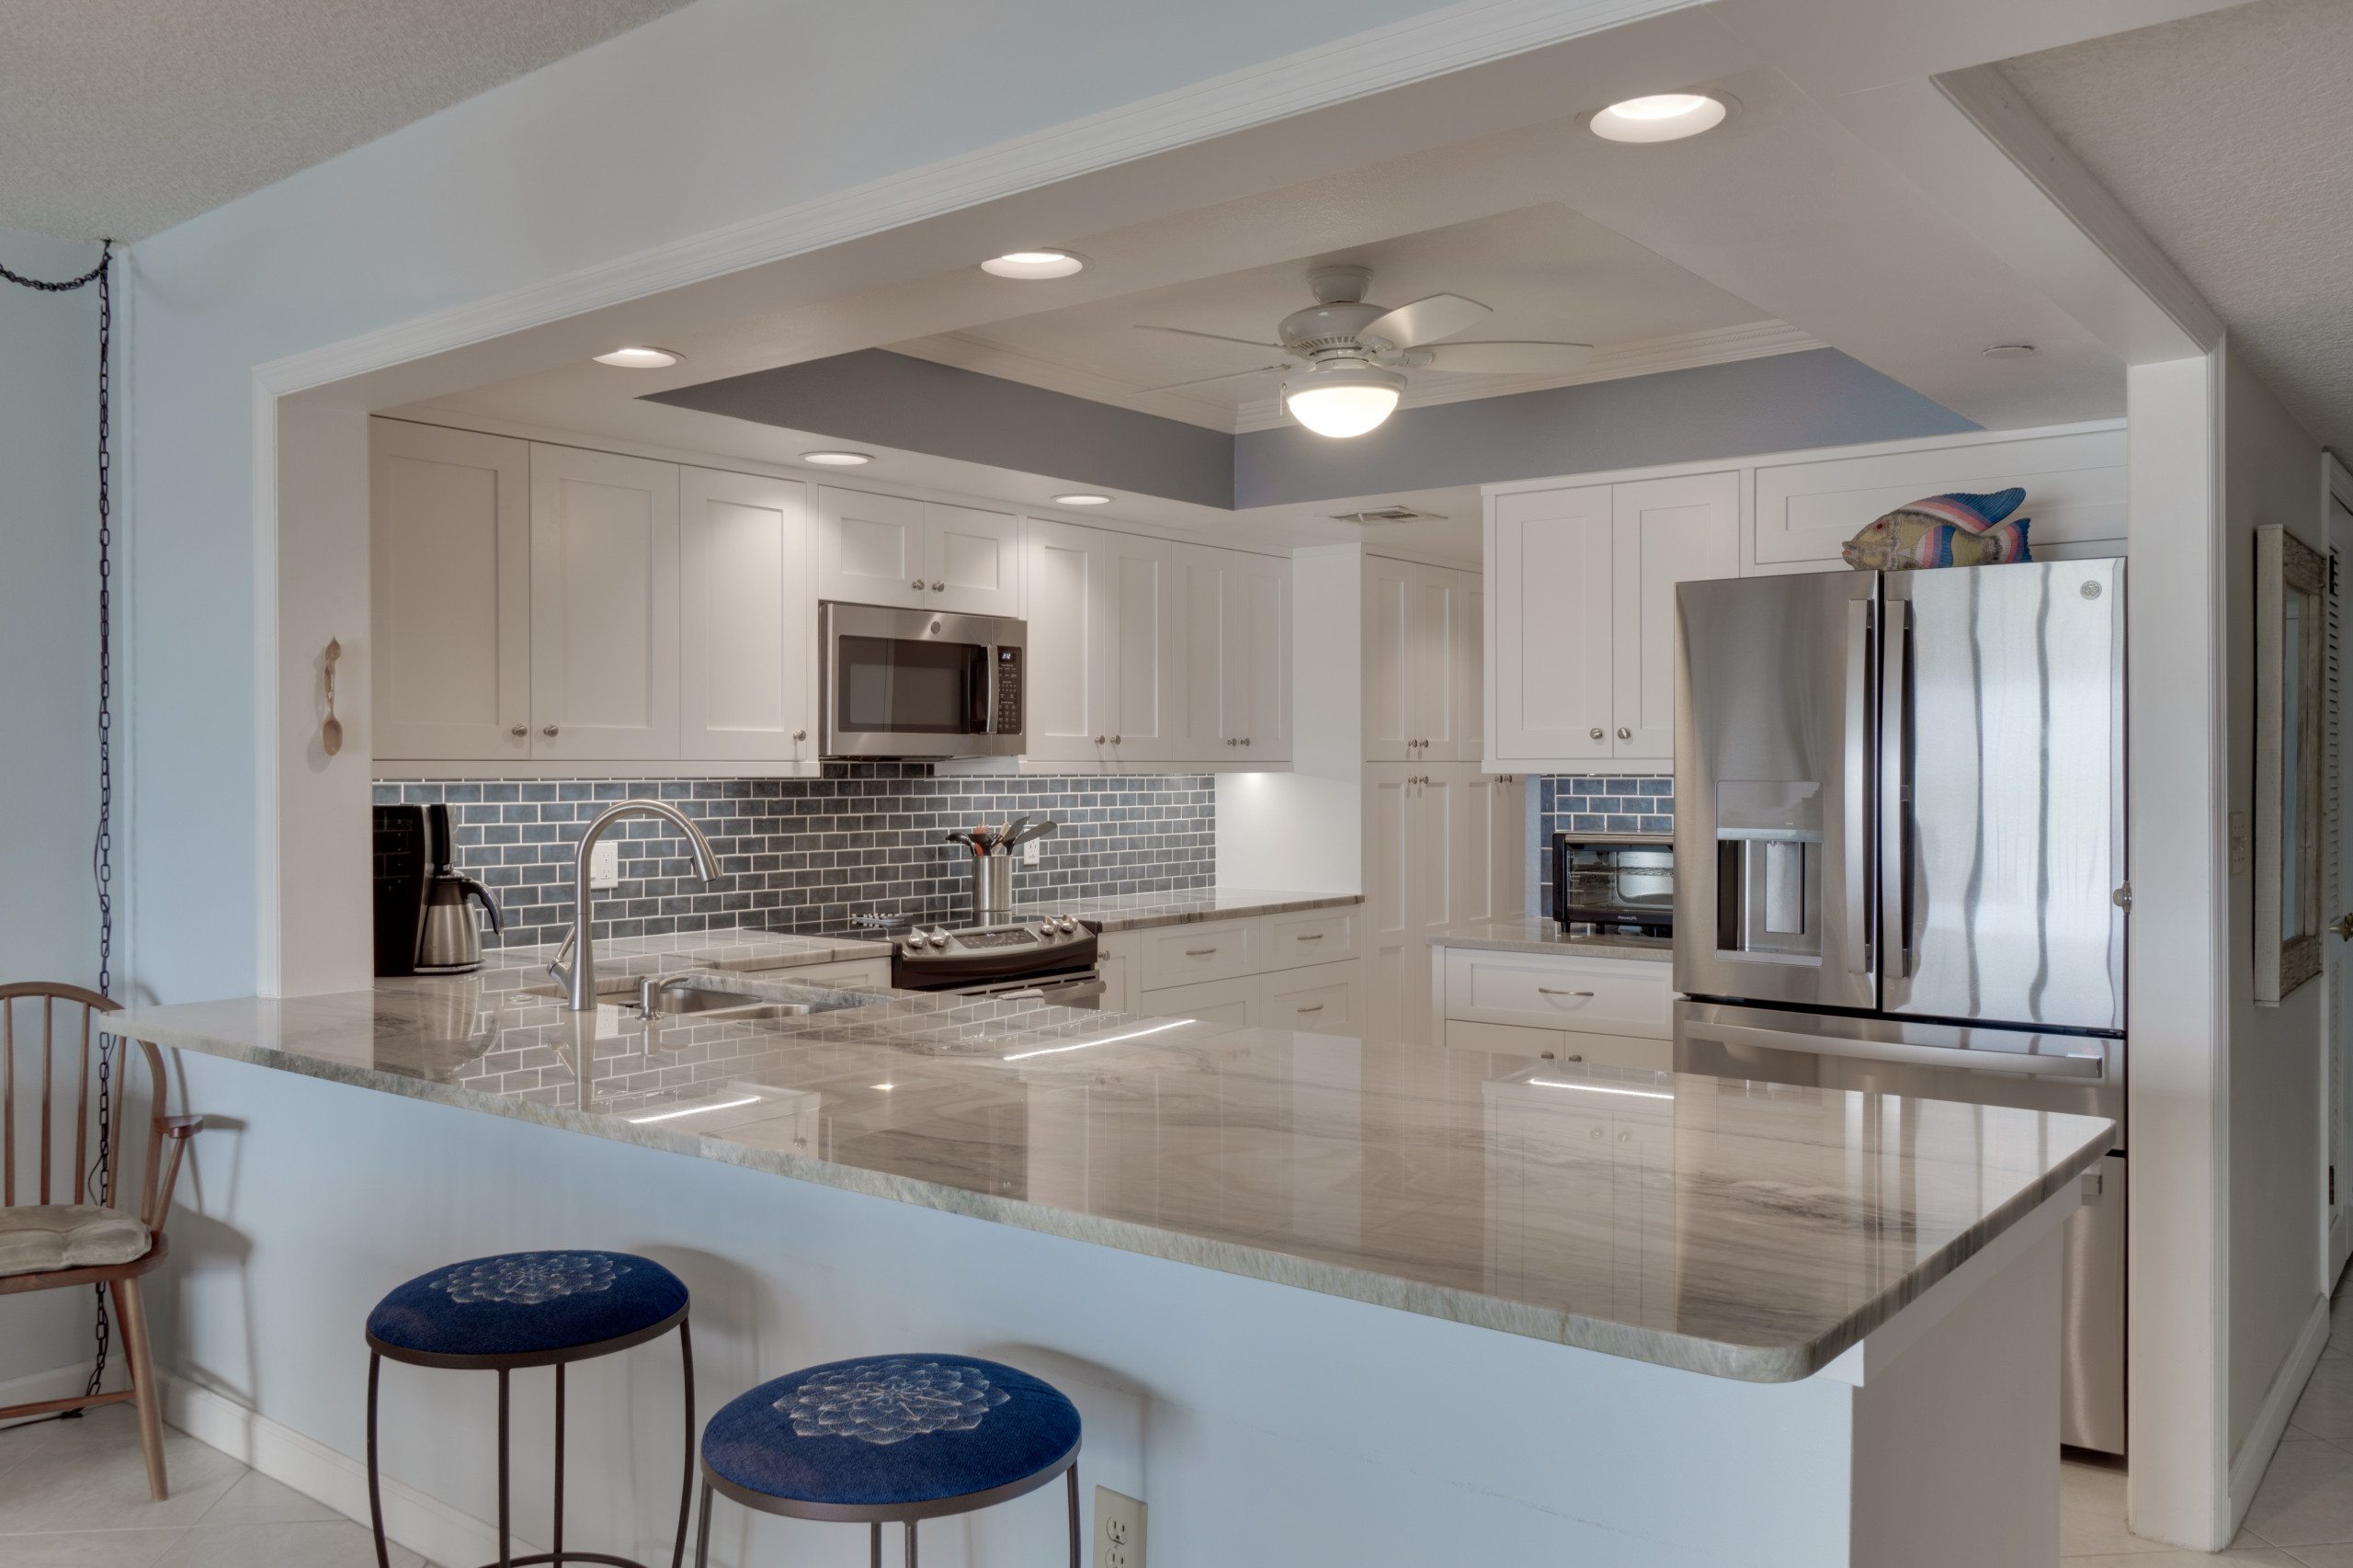 Condo Kitchen Remodel in Painted White Shaker